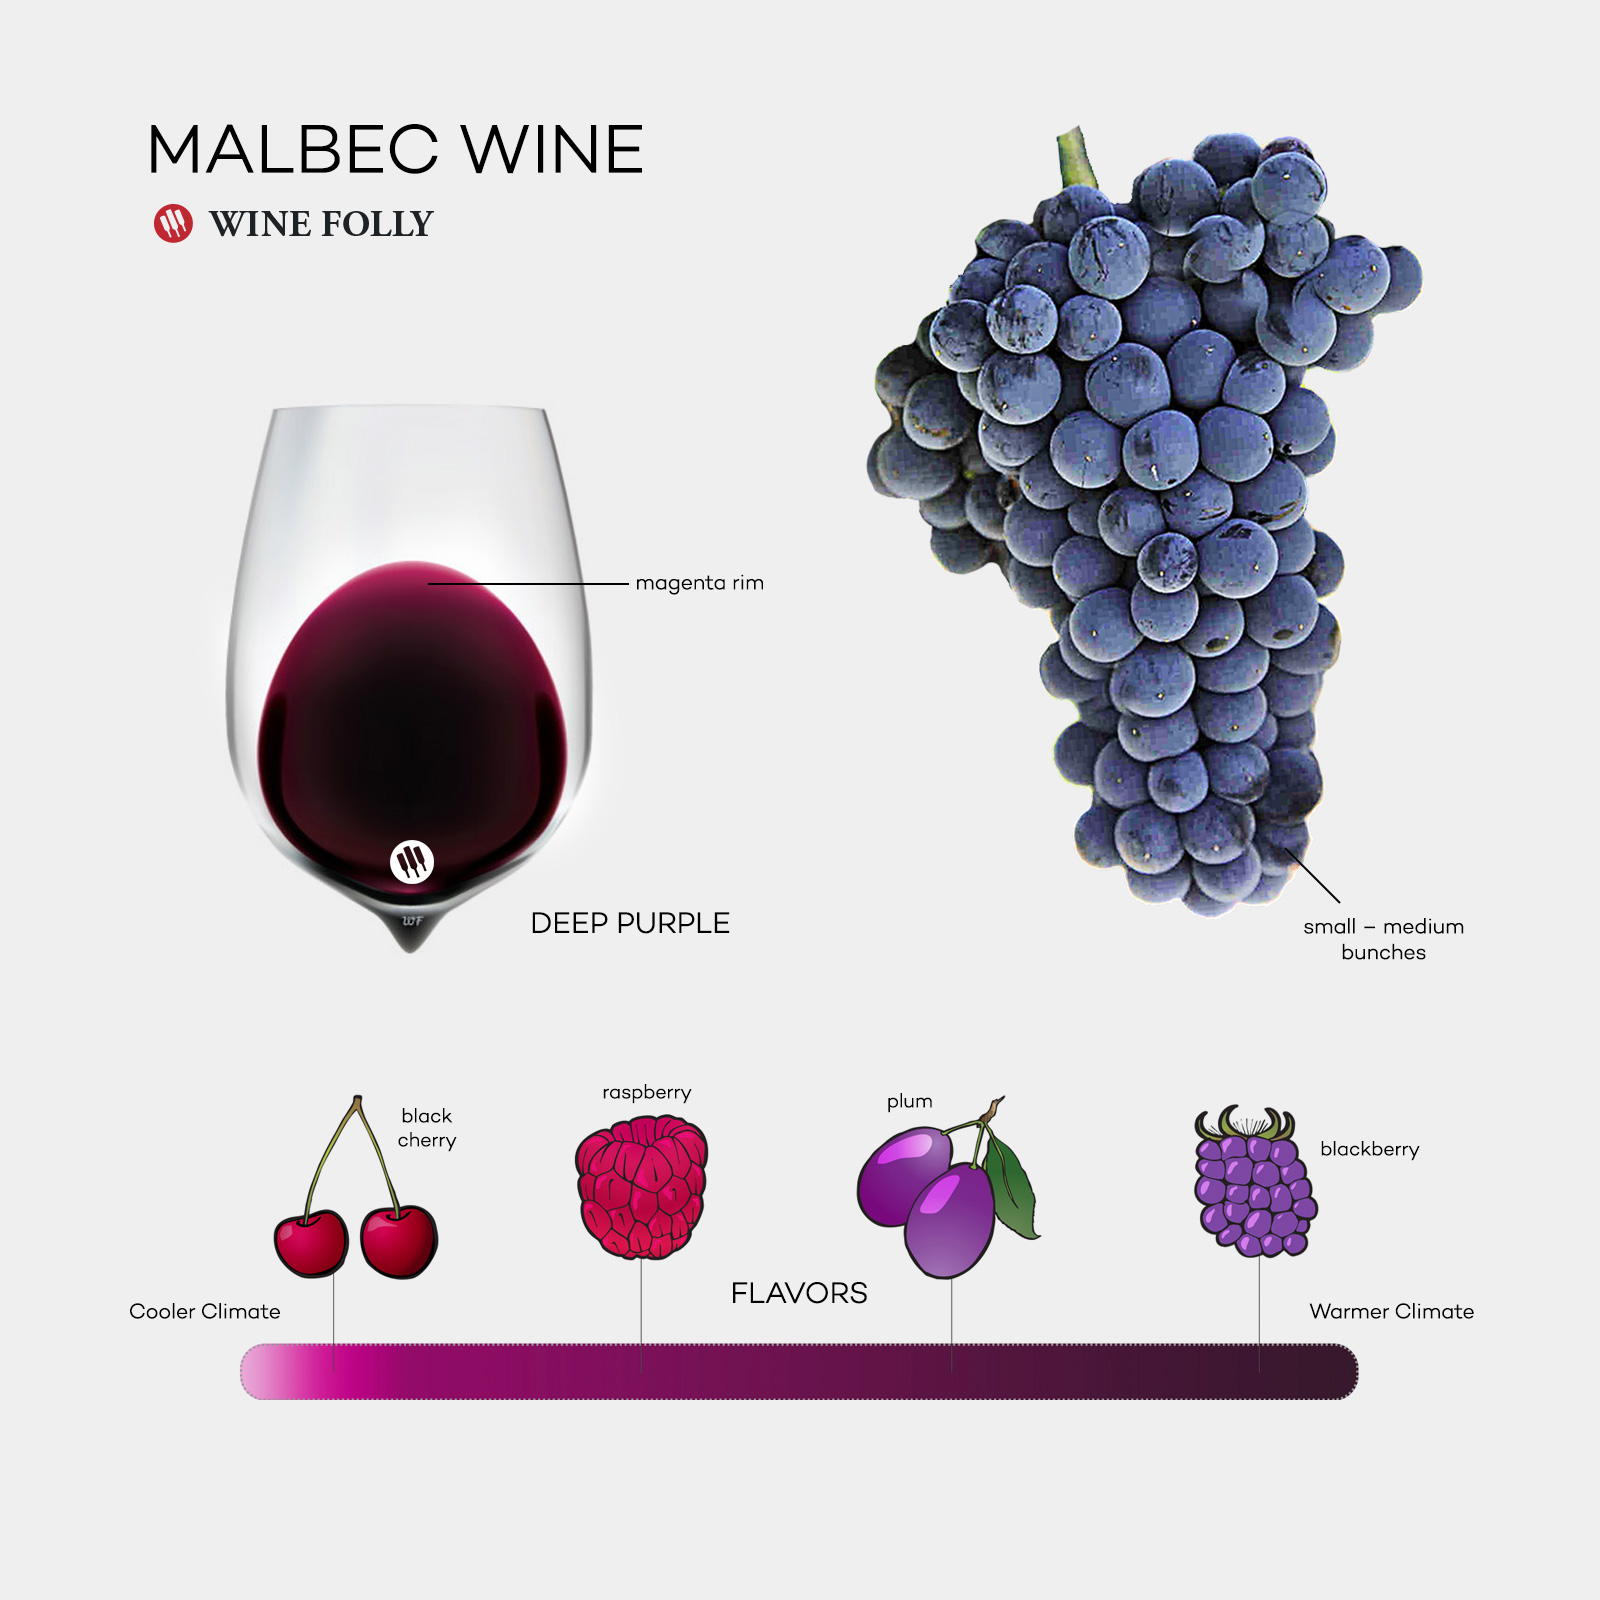 Malbec Wine 101 infographic by Wine Folly